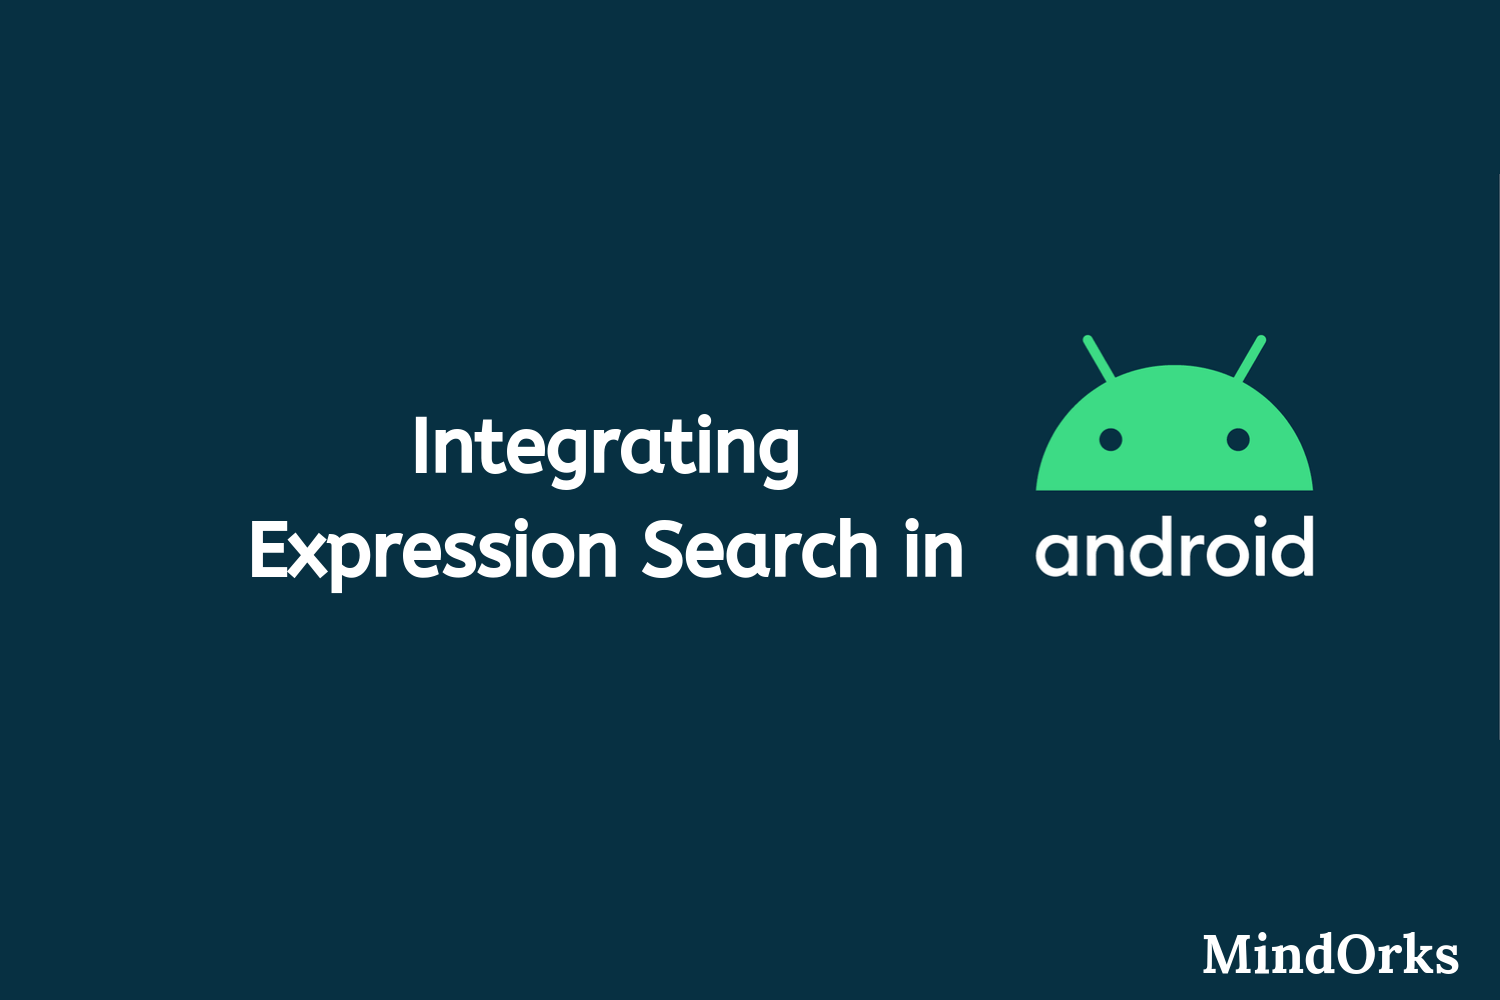 Integrating Expression Search in Android app